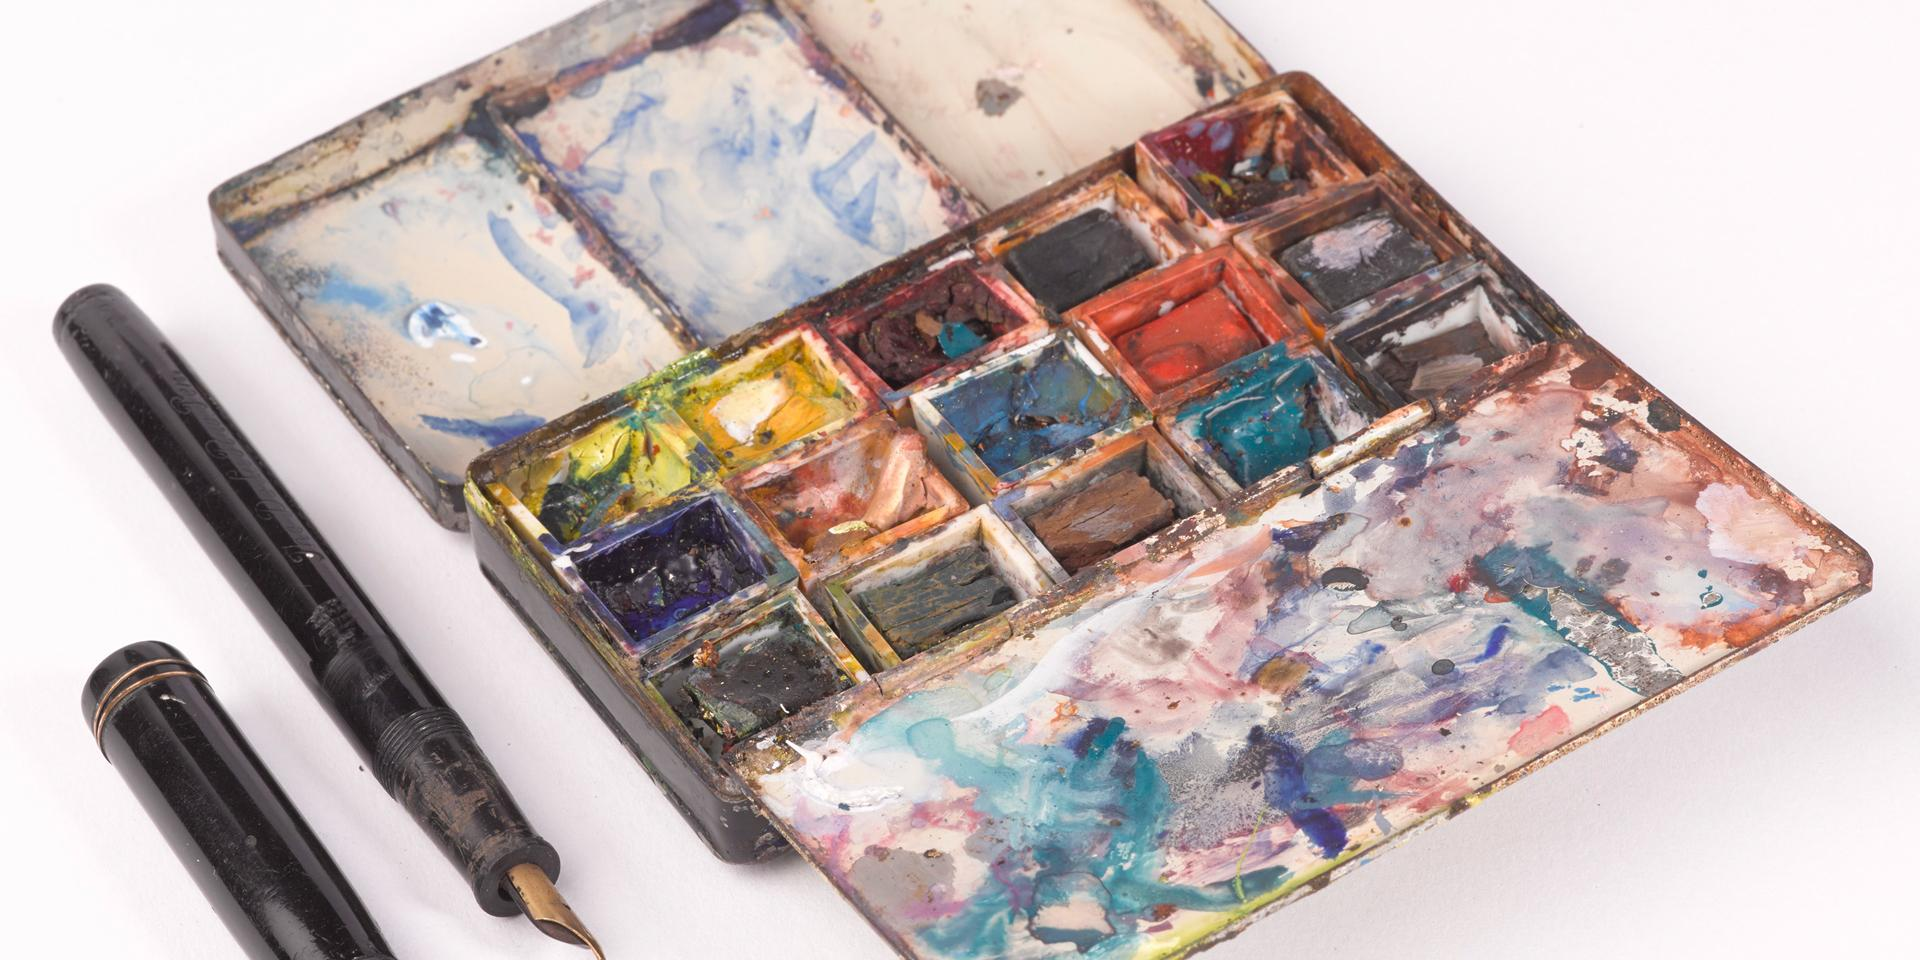 Watercolour box used by Sergeant Fred Darking, Royal Engineers c.1944